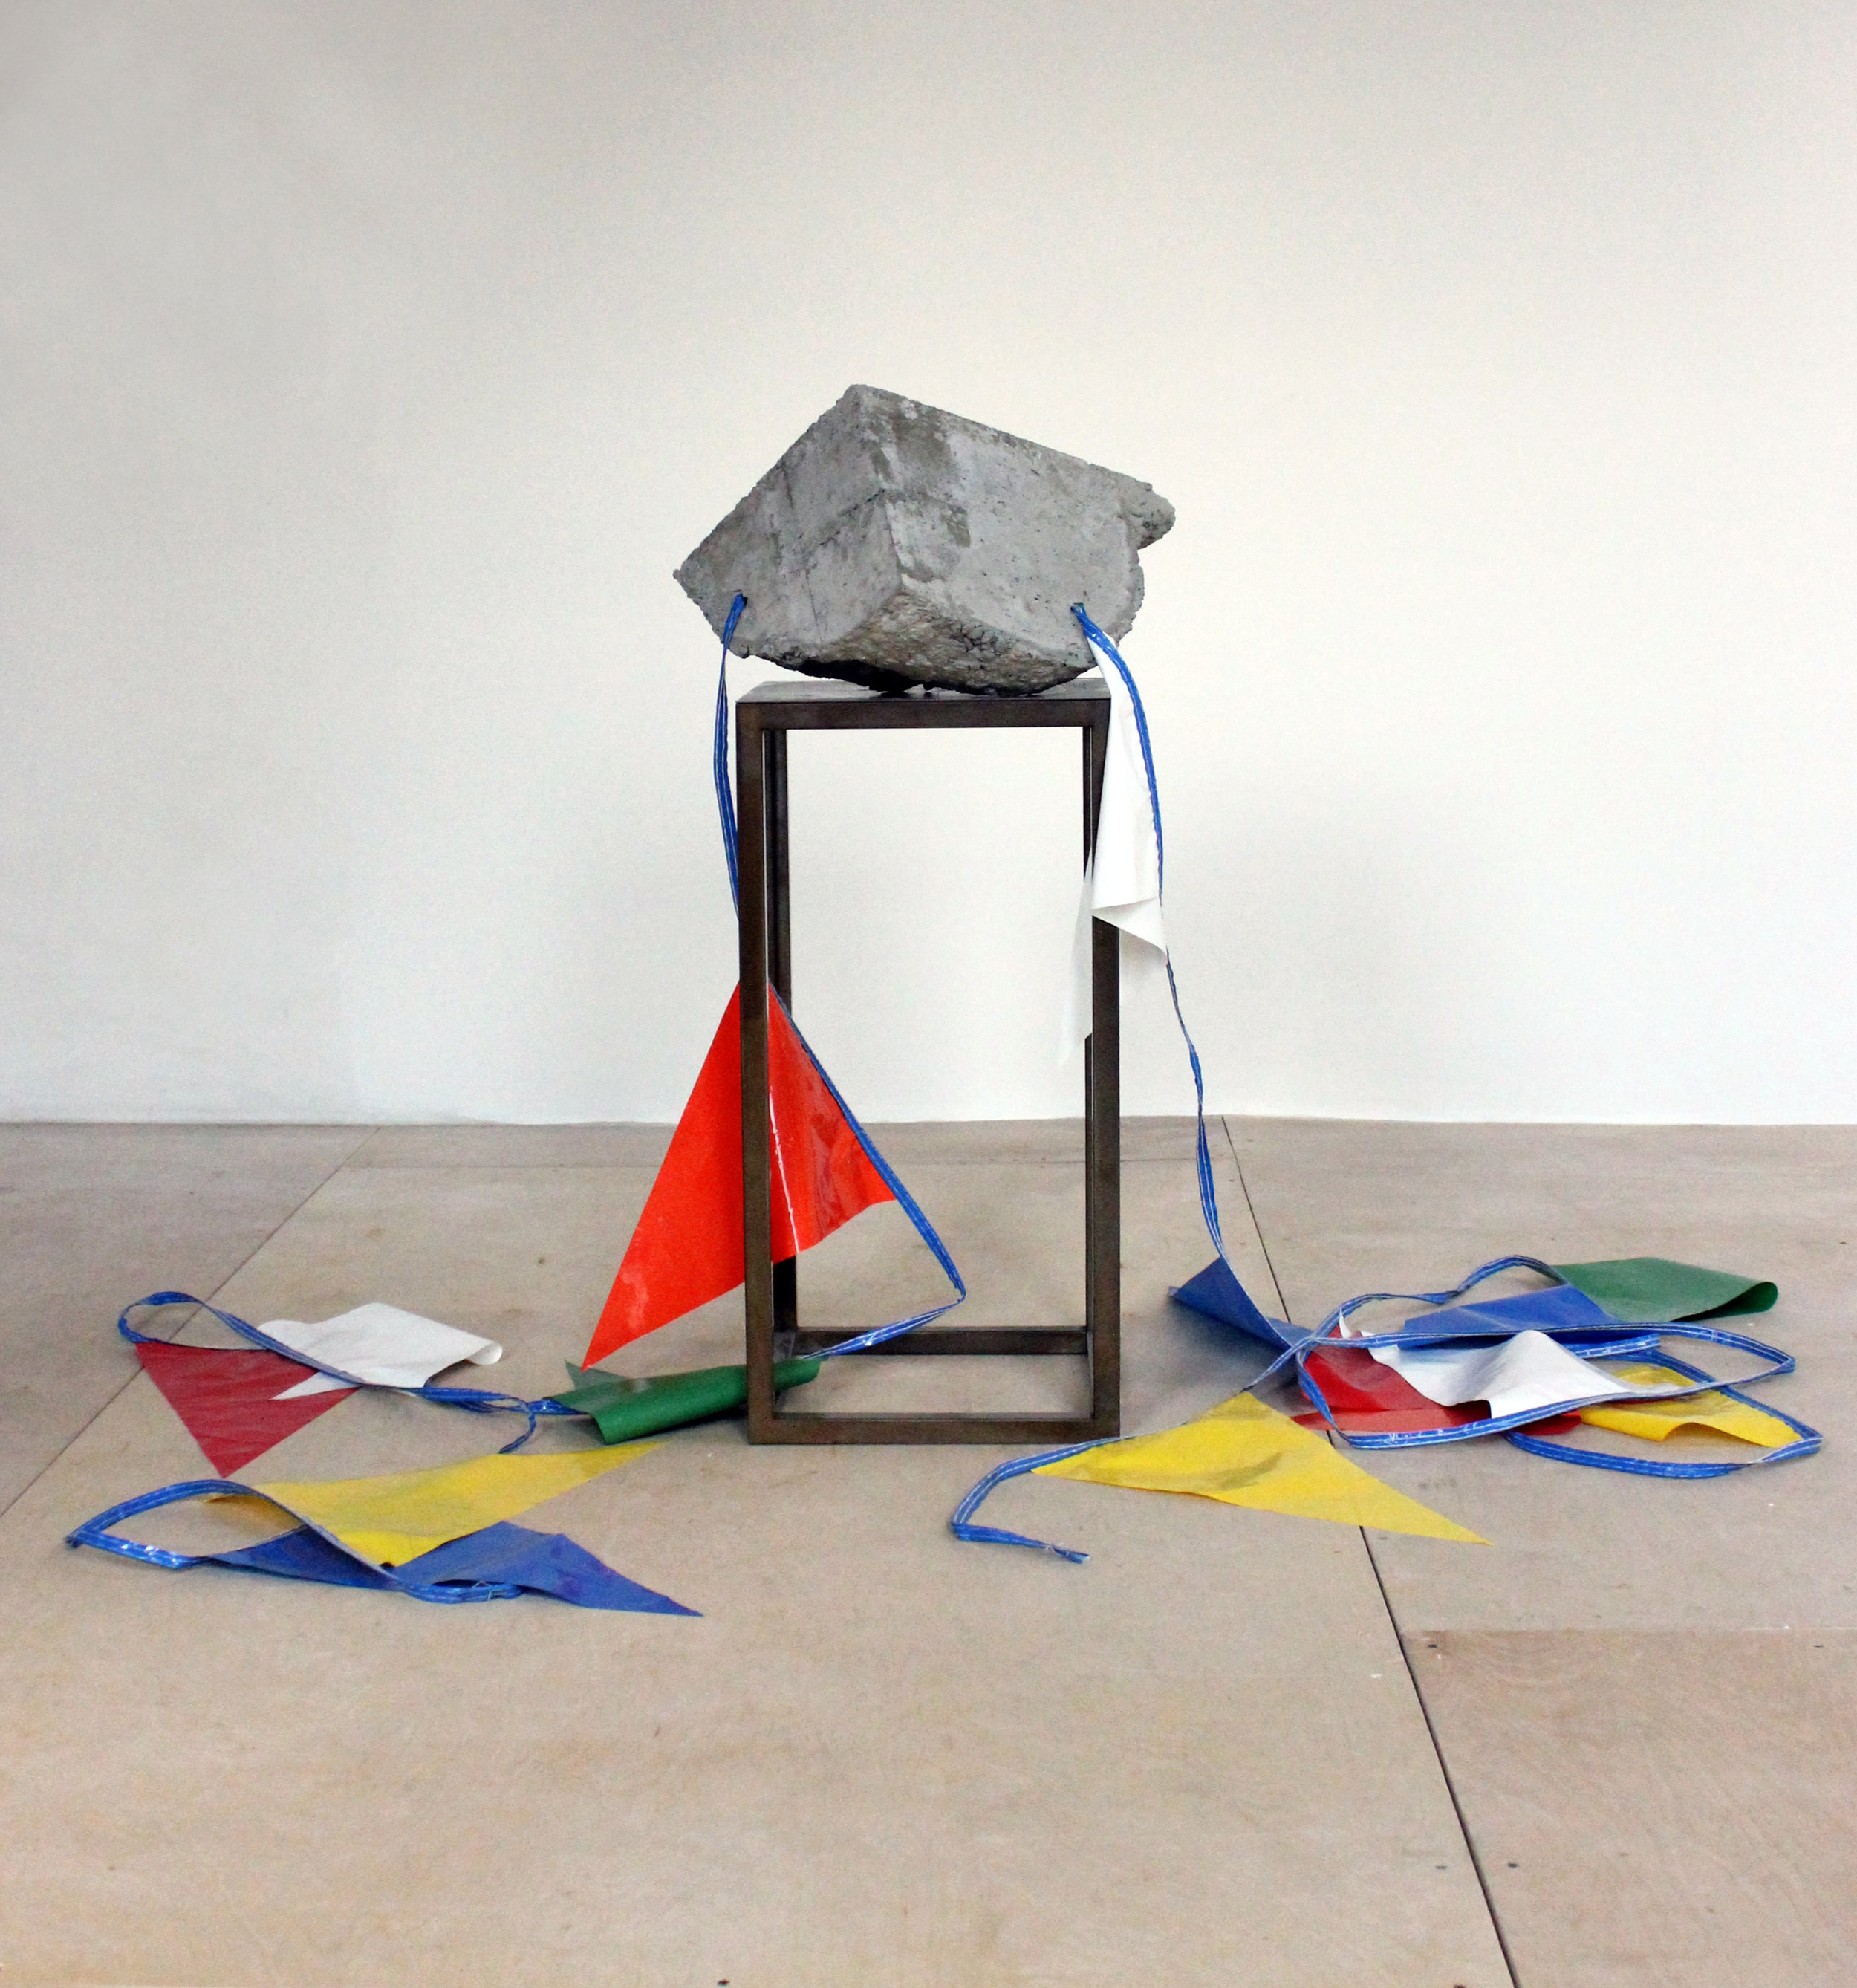 Jeff Feld_Sale of the Century_2015_Concrete steel nylon pennant_40x19x20 in.jpg